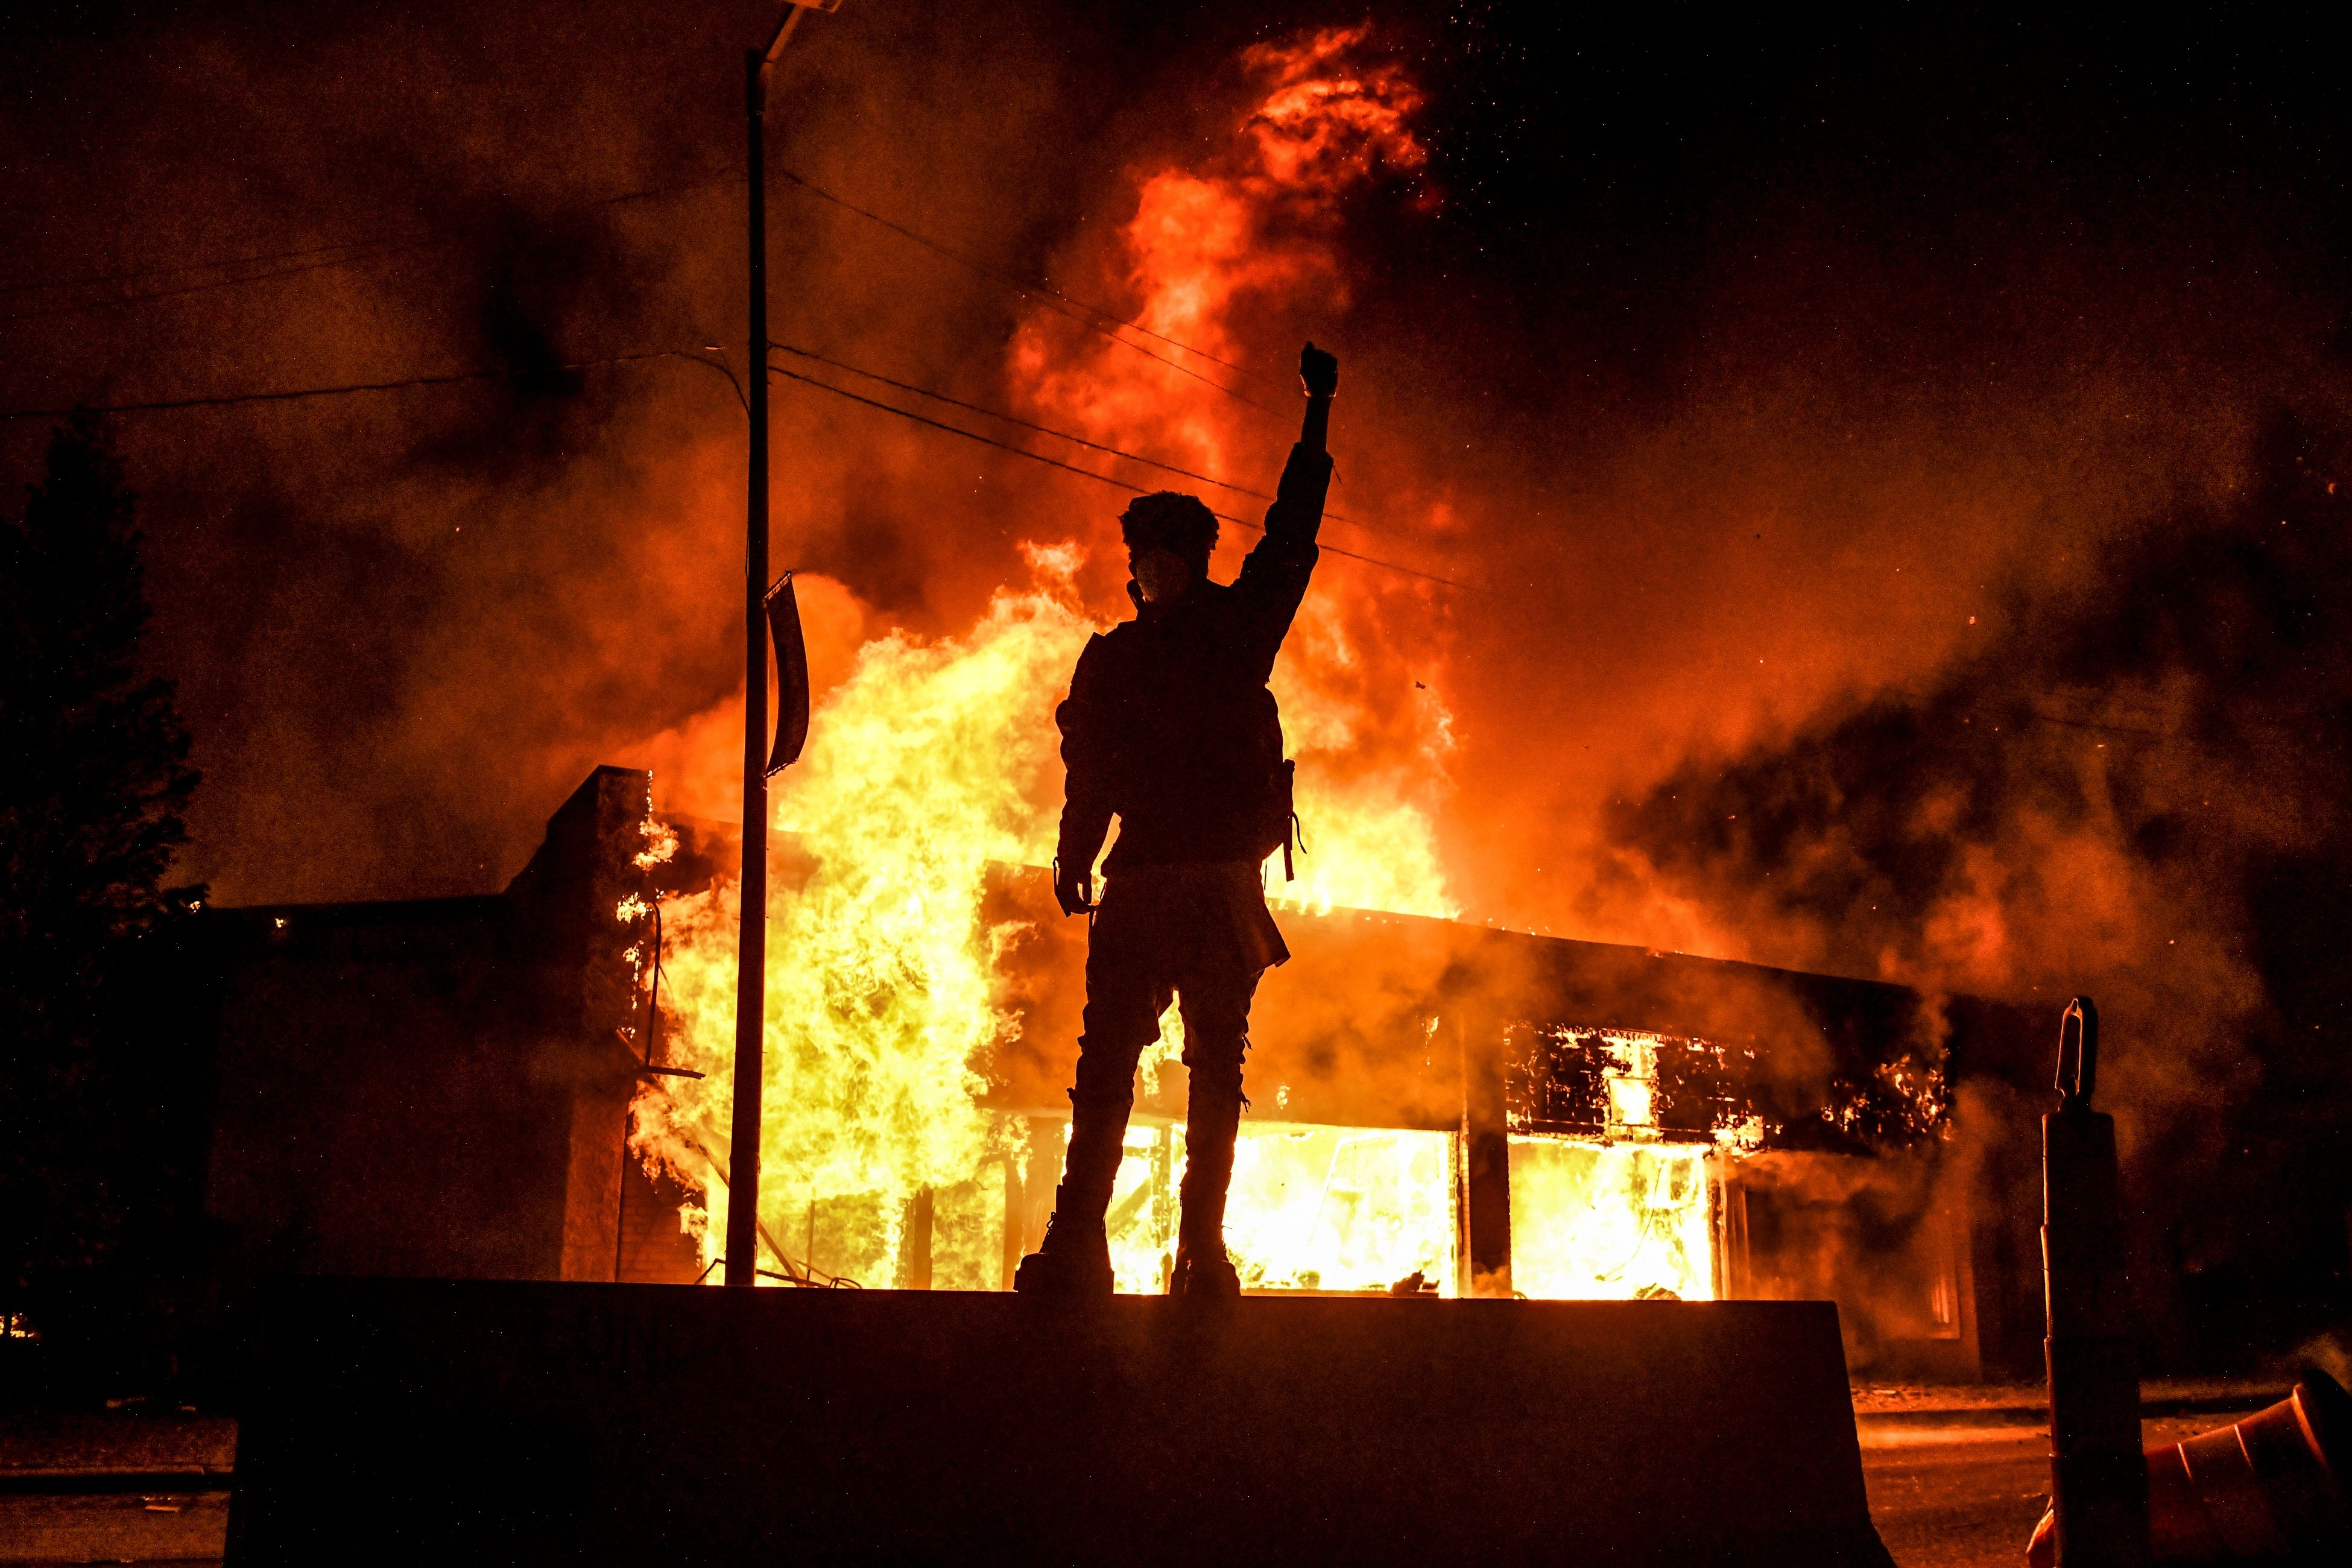 A protester reacts standing in front of a burning building set on fire during a demonstration in Minneapolis, Minnesota, on May 29, 2020.(Photo: Chandan Khanna/AFP via Getty Images)